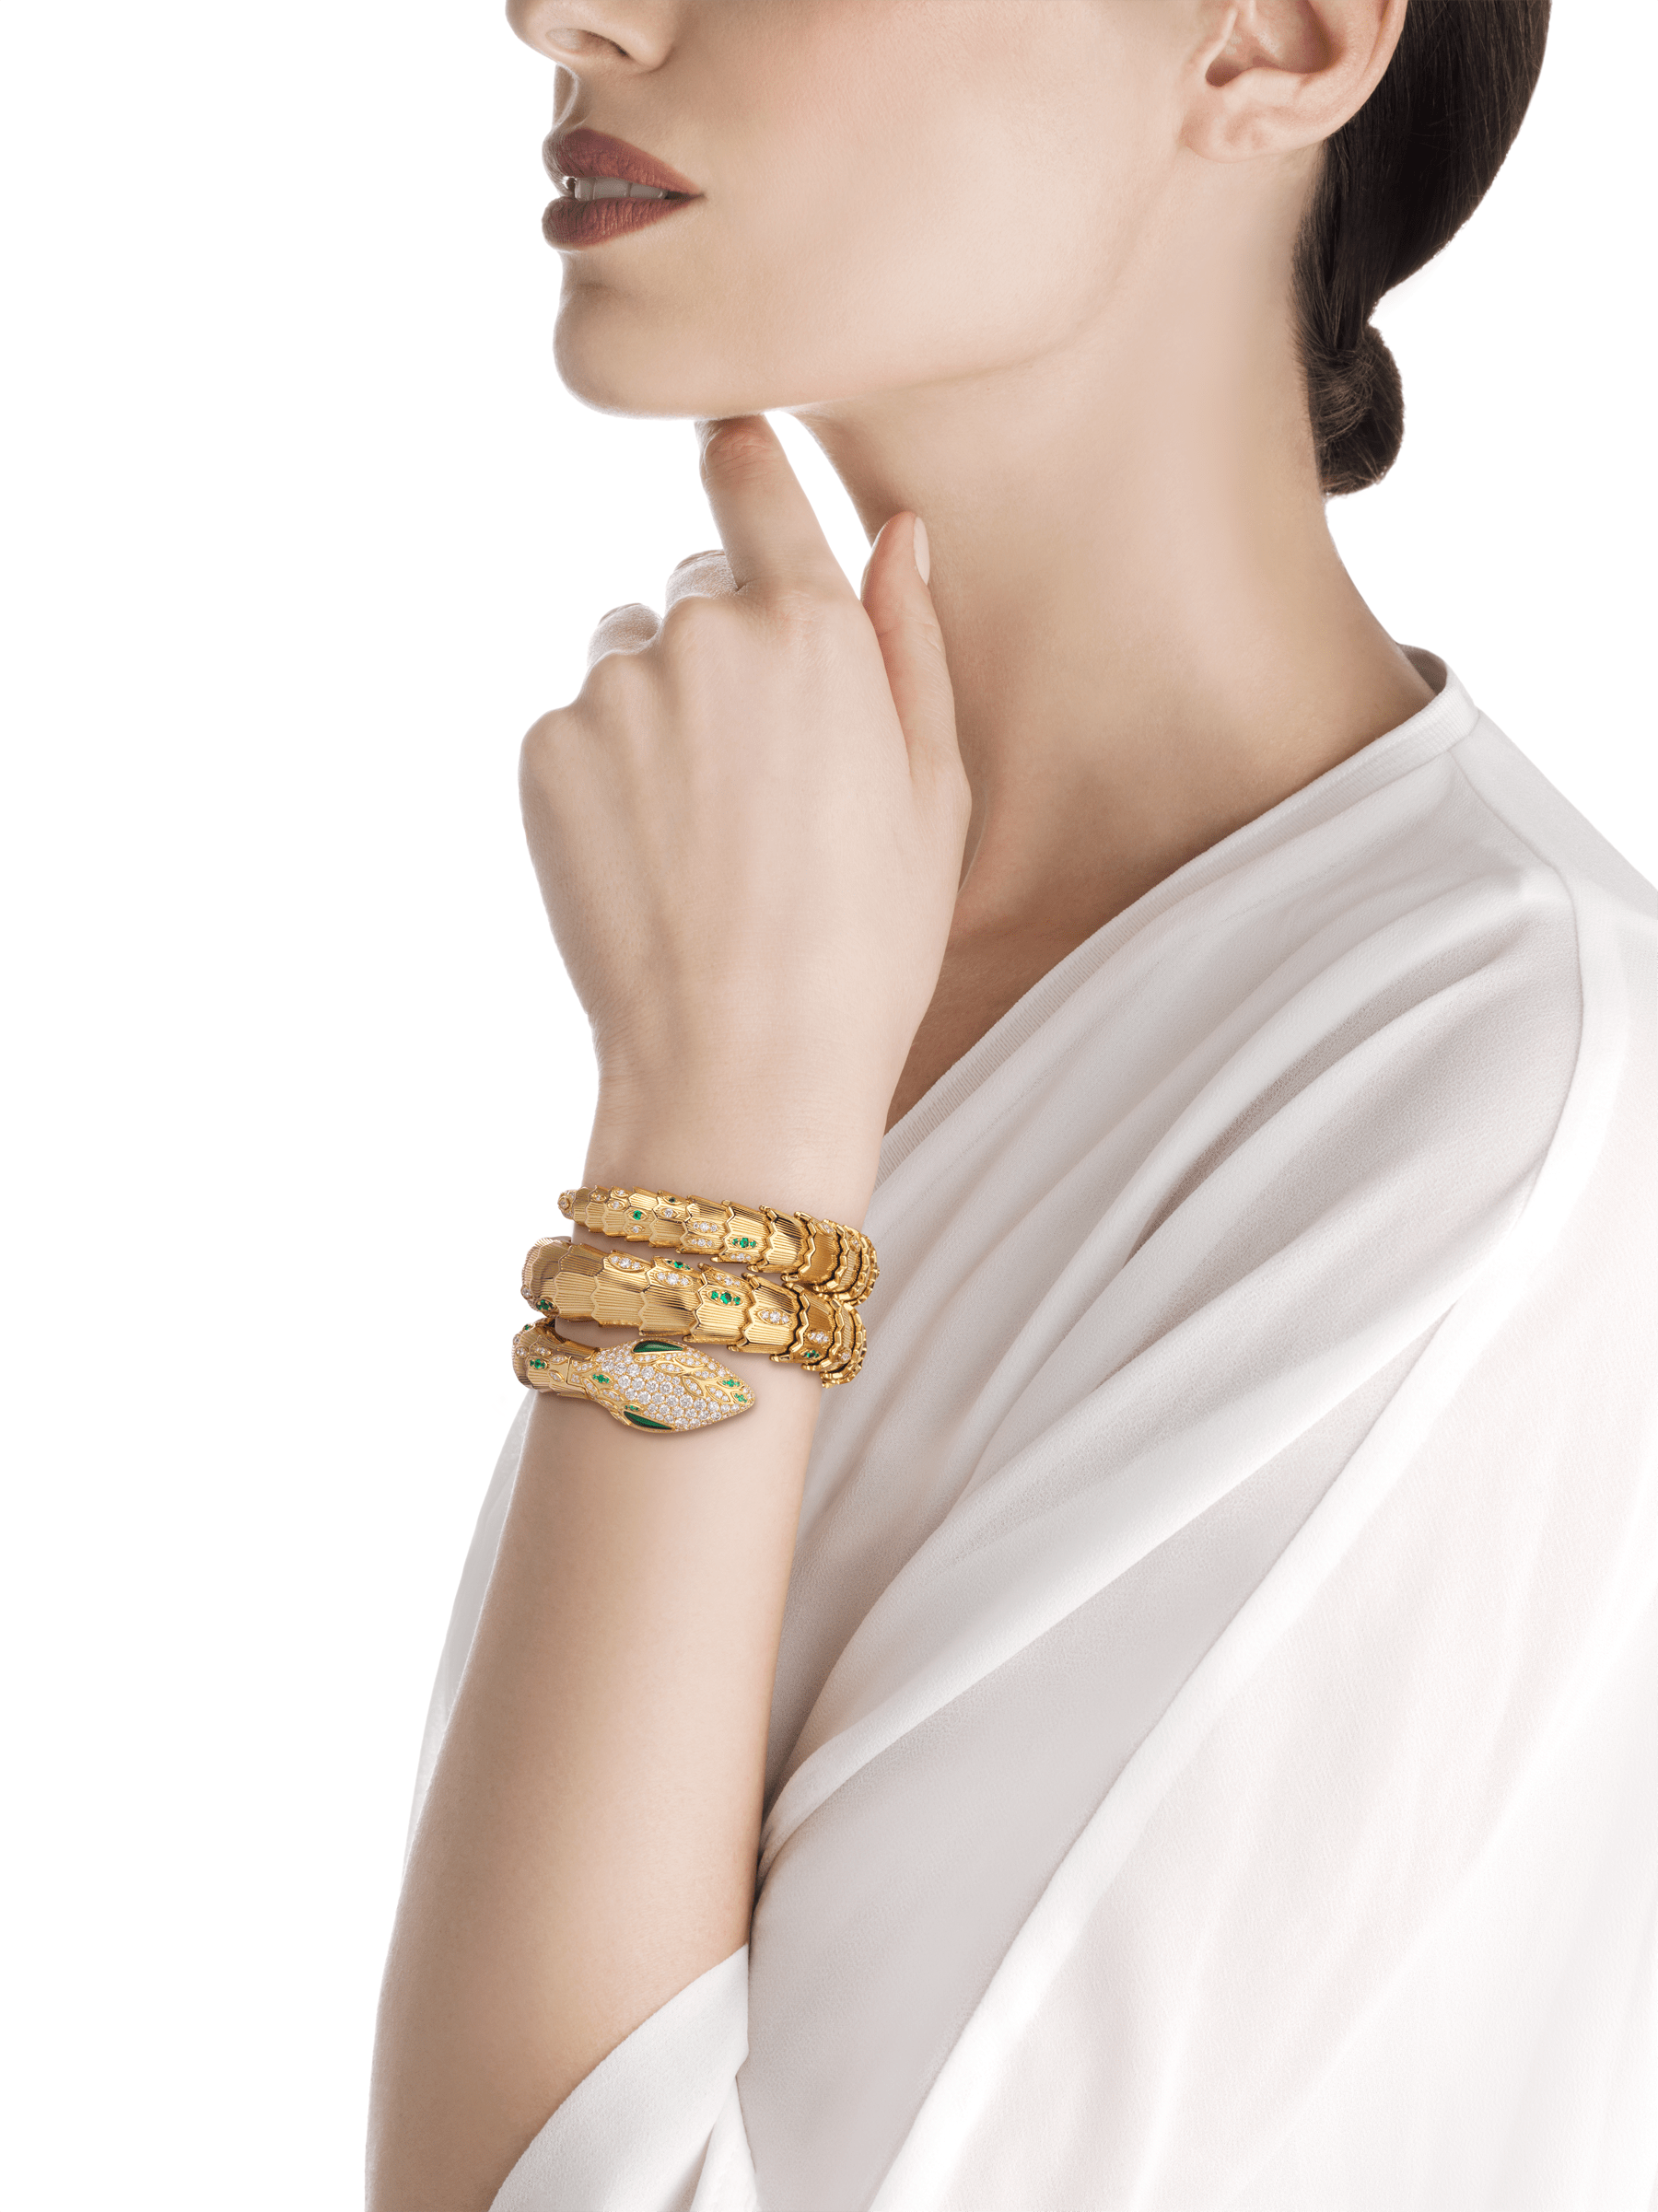 Serpenti Secret Watch with 18 kt yellow gold head set with brilliant cut diamonds, brilliant cut emeralds and malachite eyes, 18 kt yellow gold case, 18 kt yellow gold dial and double spiral bracelet, both set with brilliant cut diamonds and brilliant cut emeralds. 101999 image 2